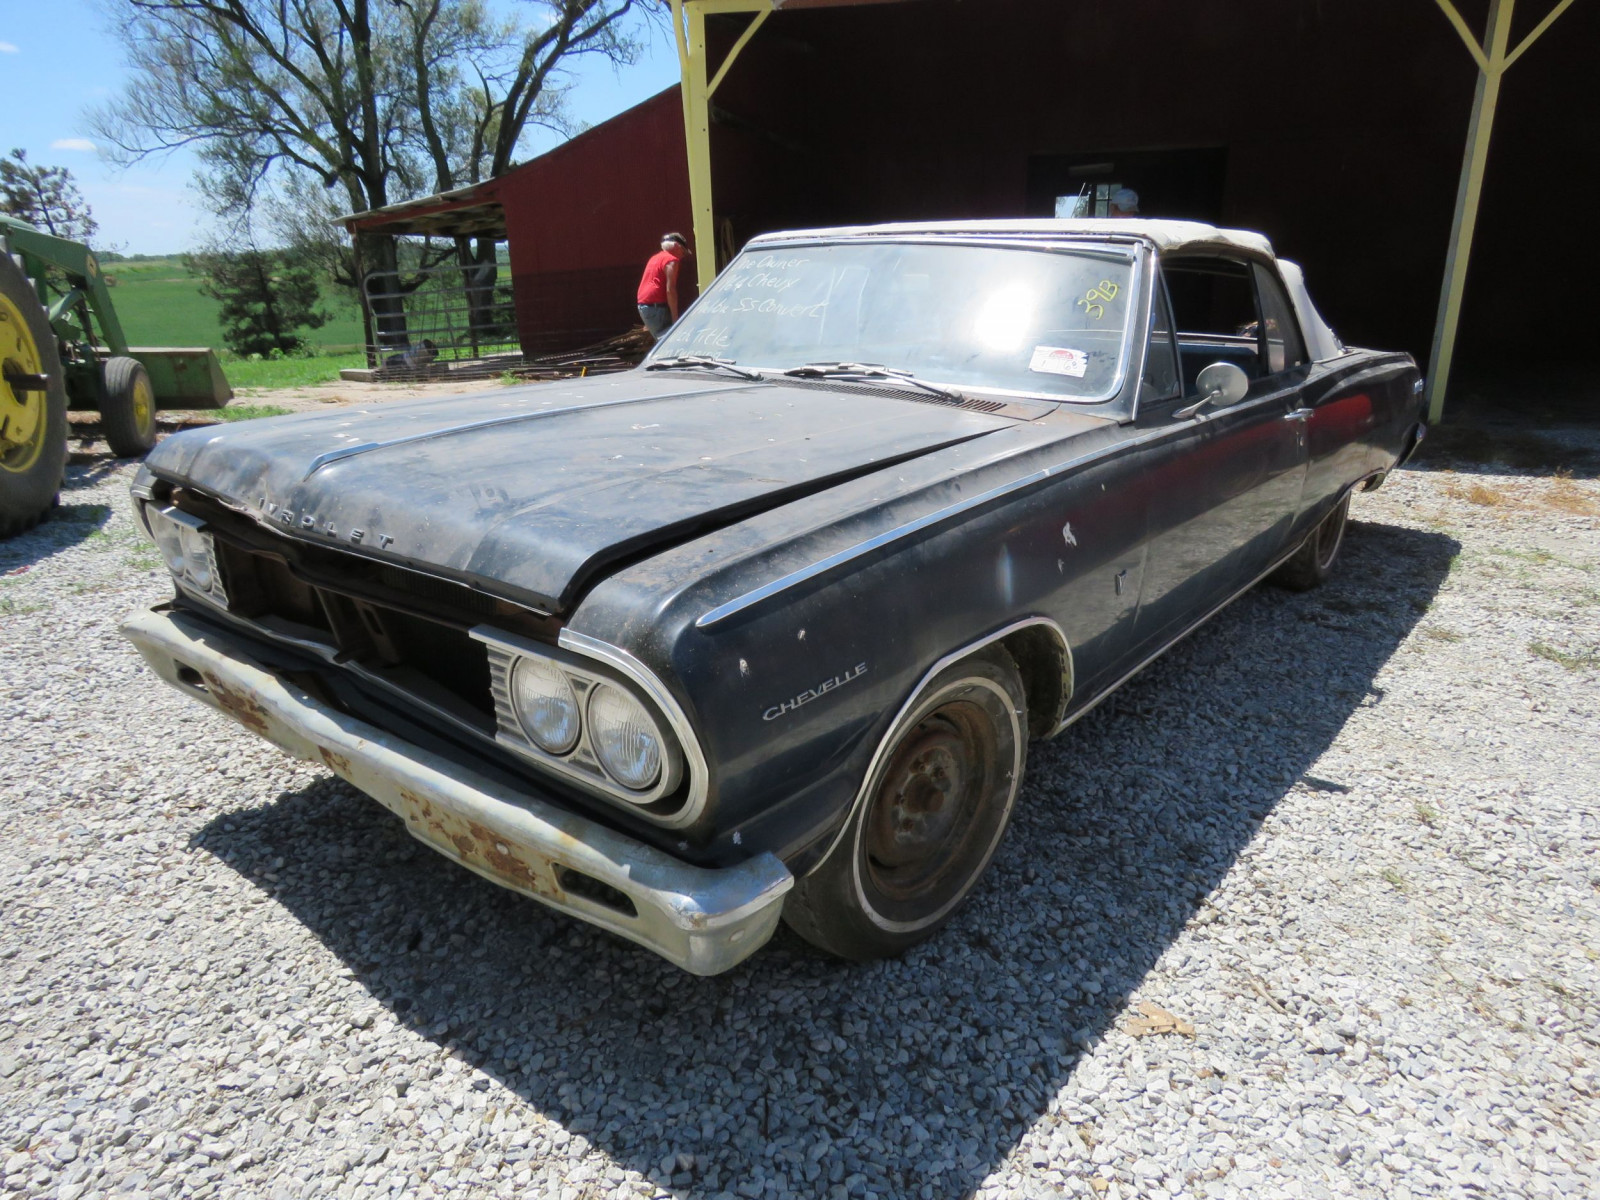 1964 Chevrolet Chevelle SS Convertible - Image 1